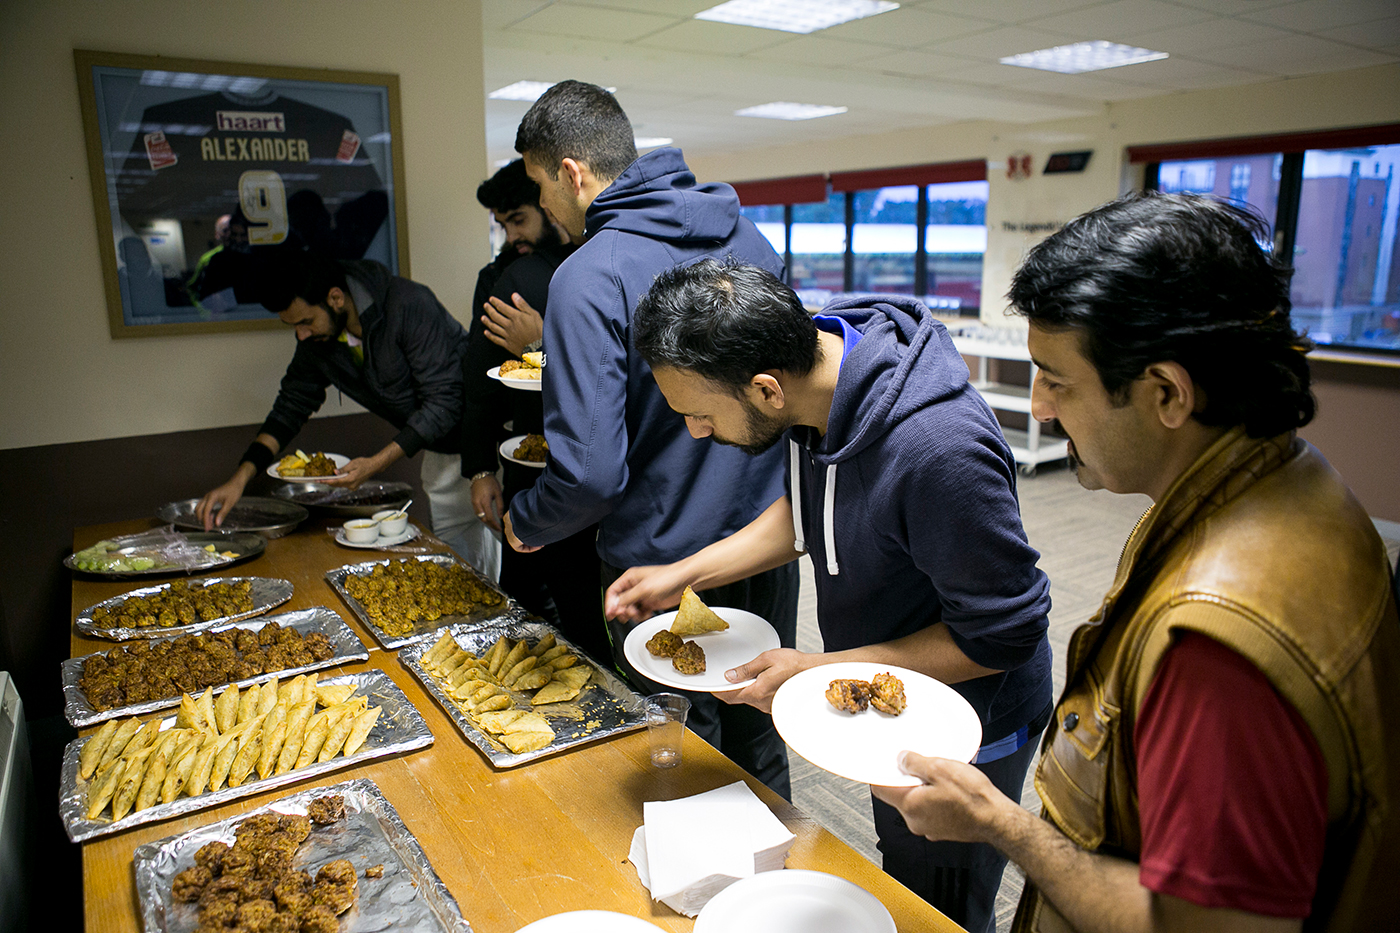 Not quite sarnies and tea: for tape-ball, it's samosas and pakoras all round